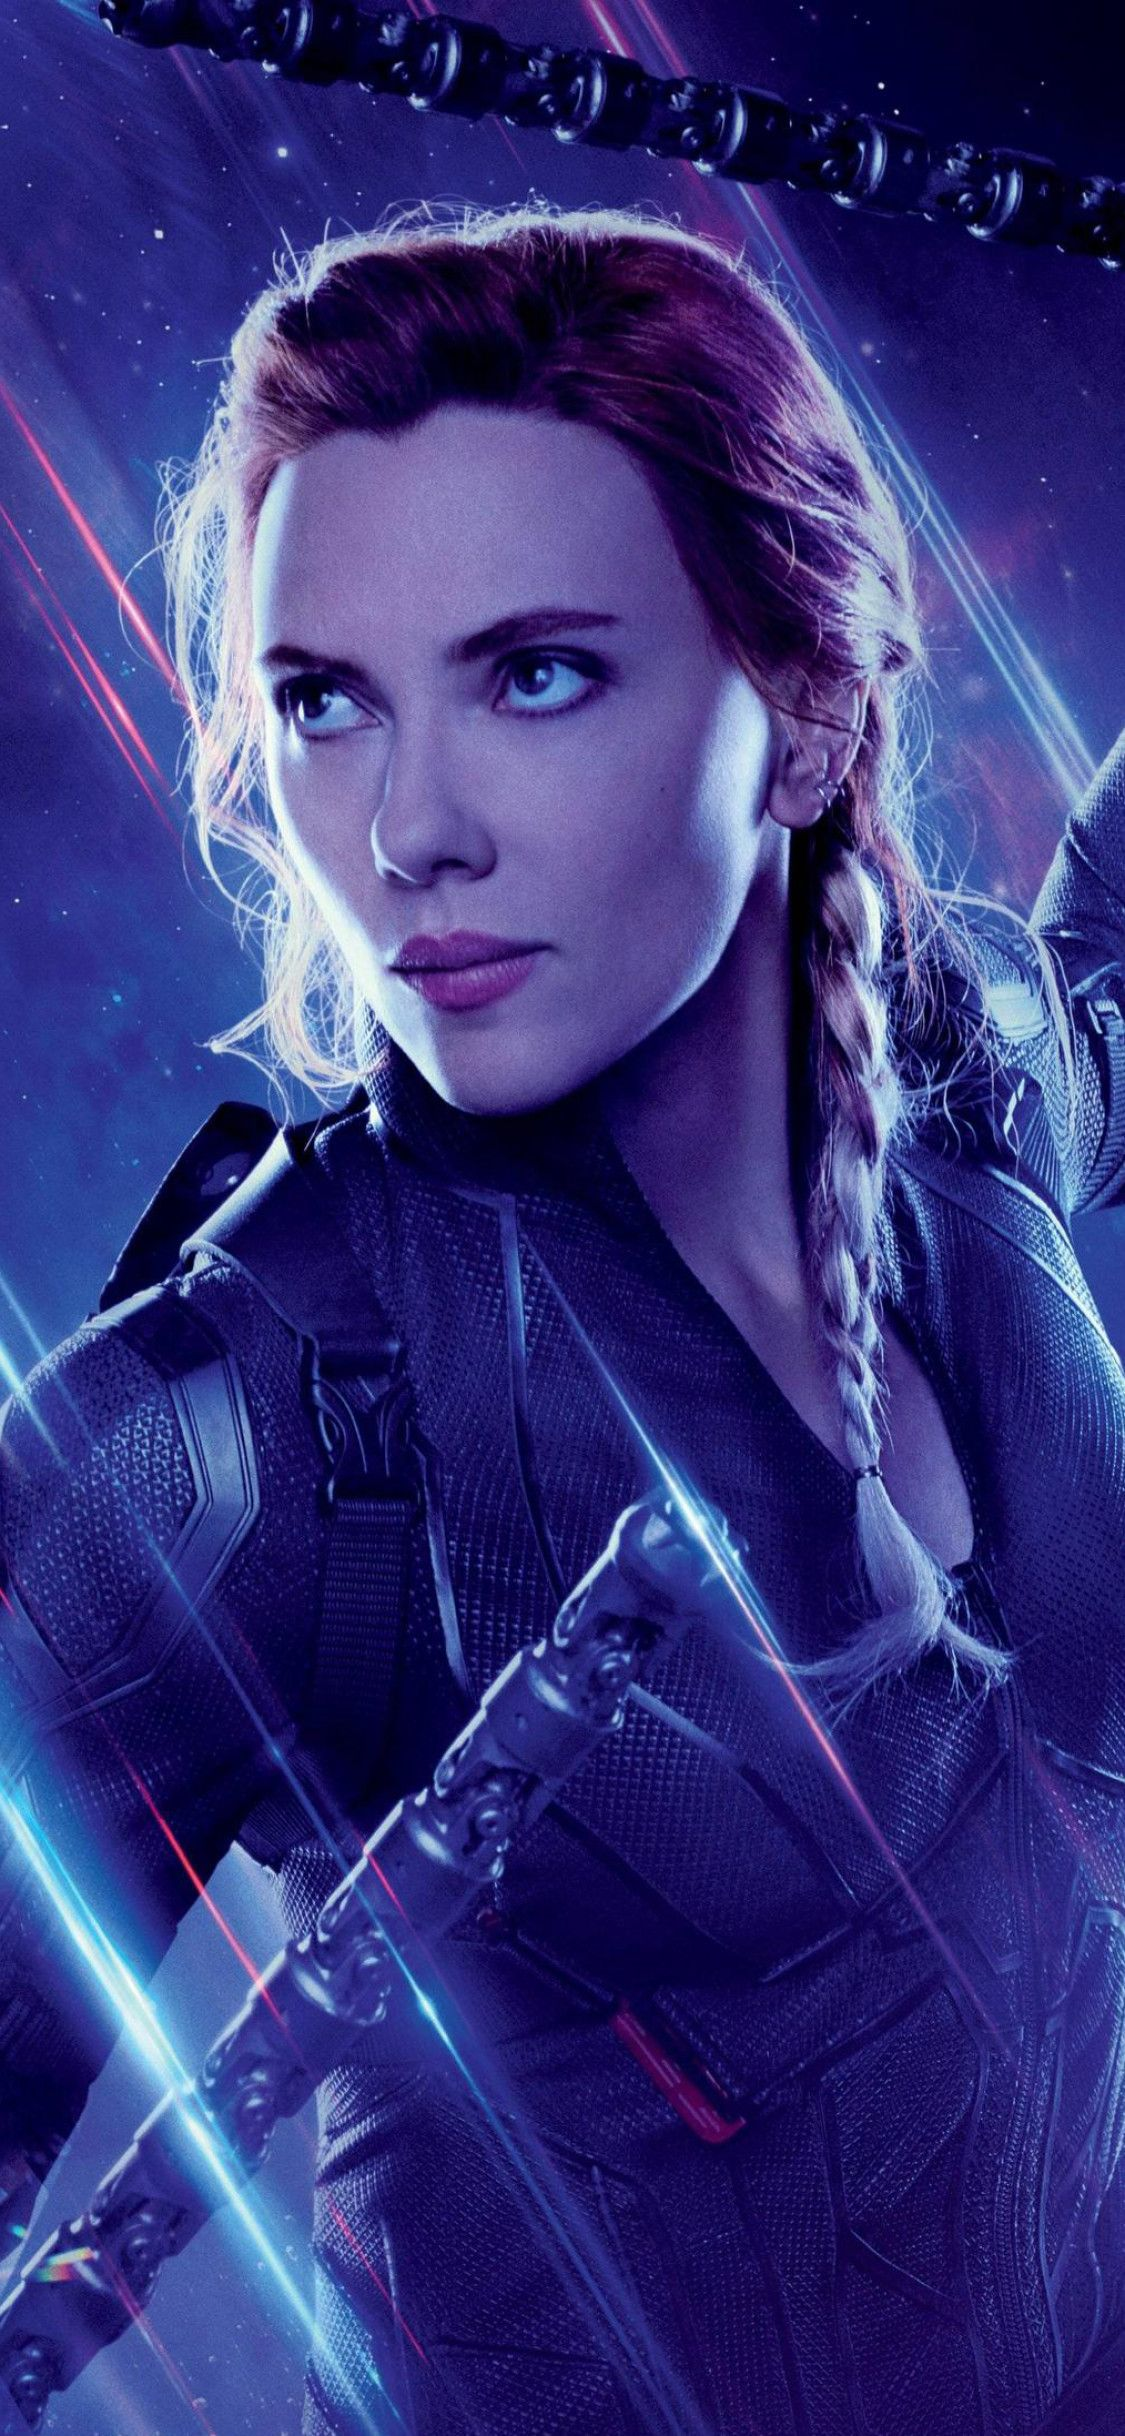 1125x2436 Black Widow In Avengers Endgame Iphone Xs Iphone 10 Iphone X Hd 4k Wallpapers Images Backg In 2020 Black Widow Avengers Black Widow Marvel Black Widow Film